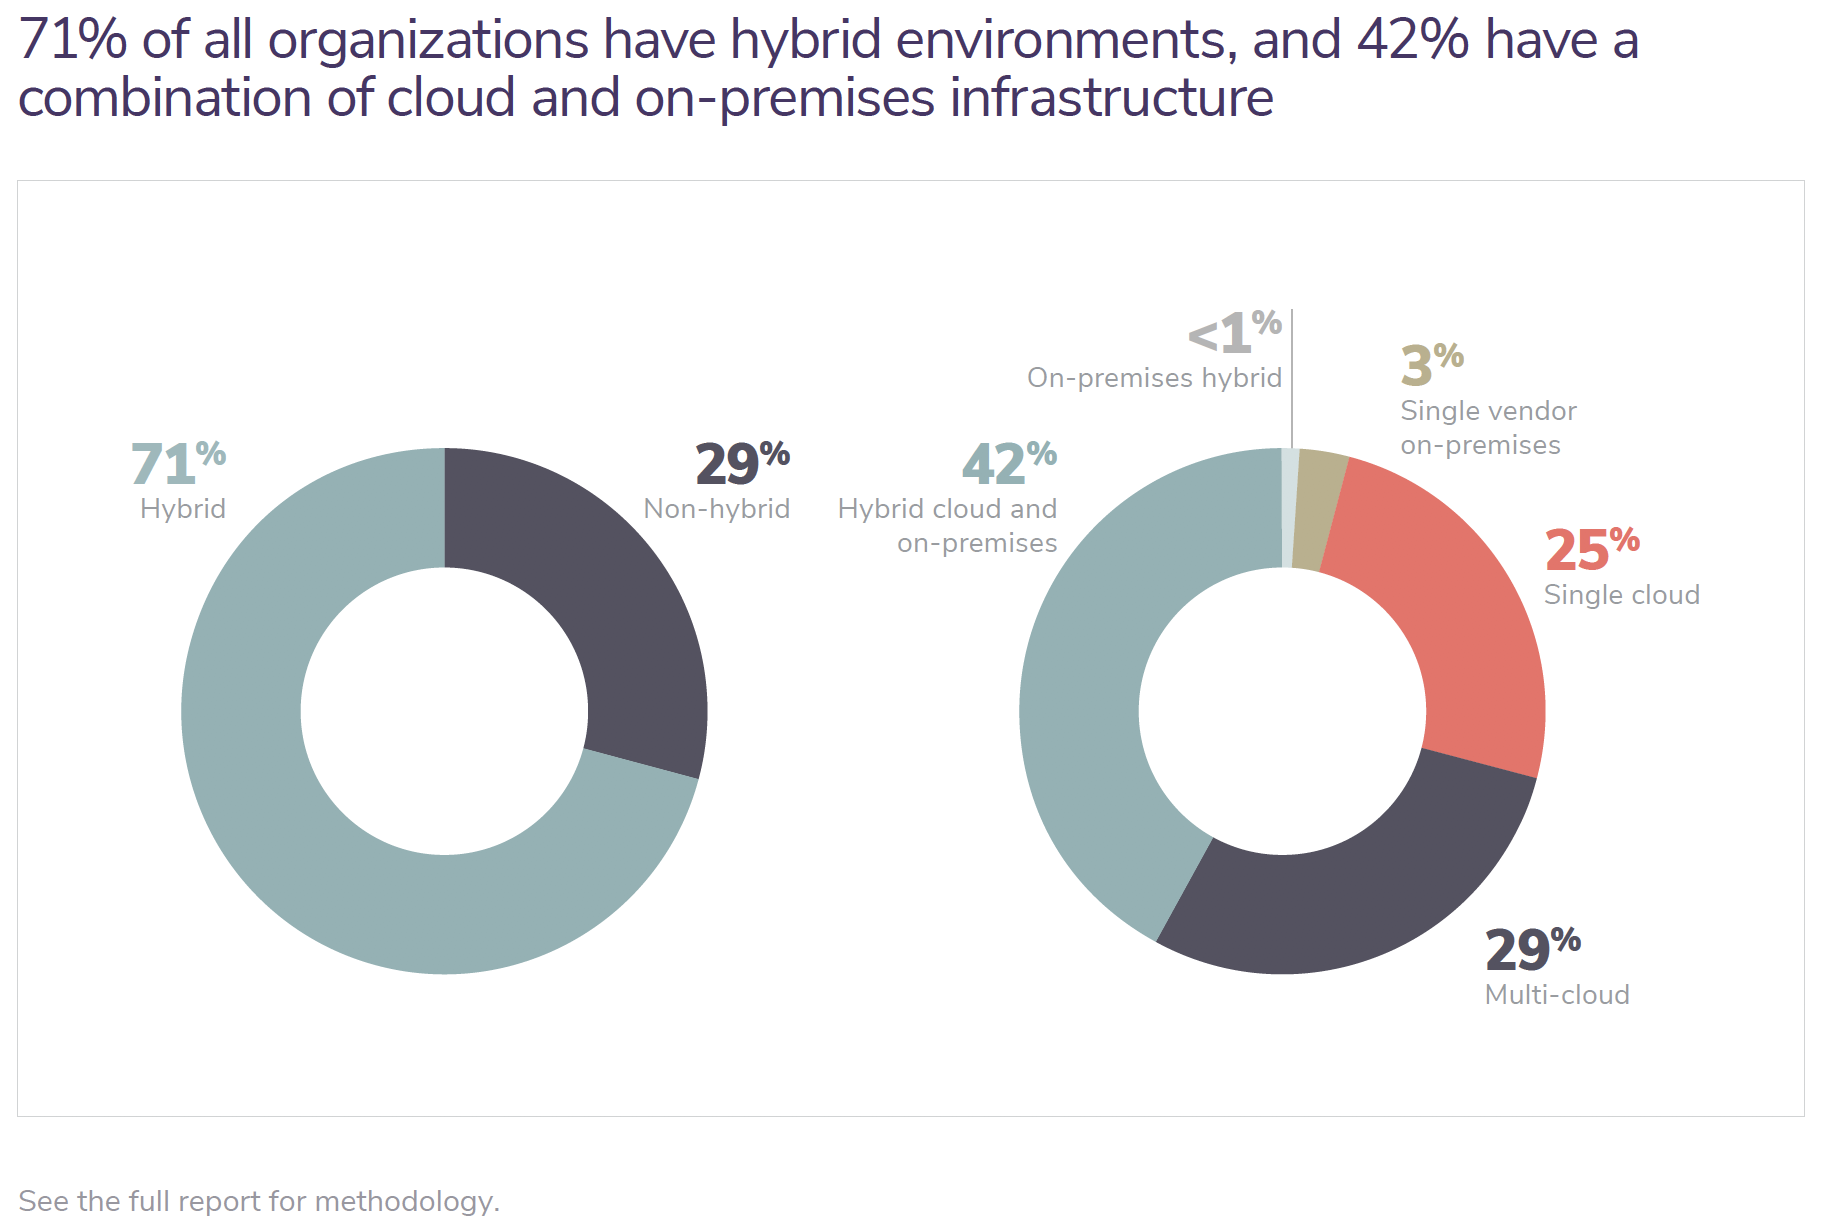 71% of all organizations have hybrid environments, and 42% have a combination of cloud and on-premises infrastructure